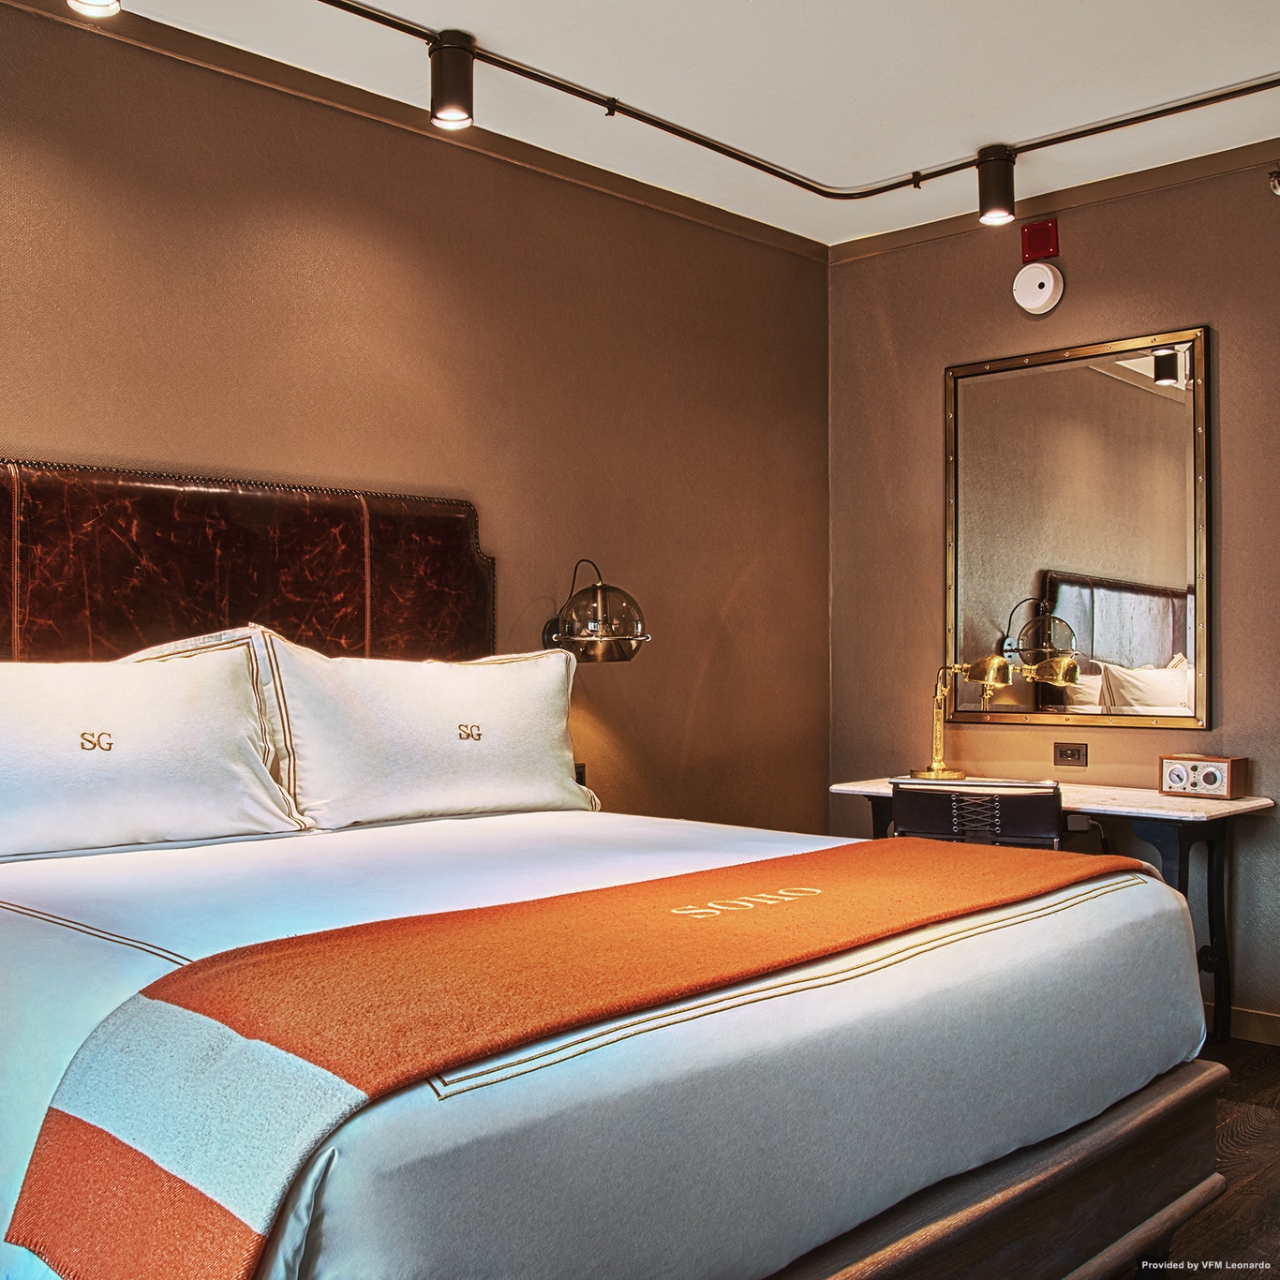 Soho Grand Hotel United States Of America At Hrs With Free Services